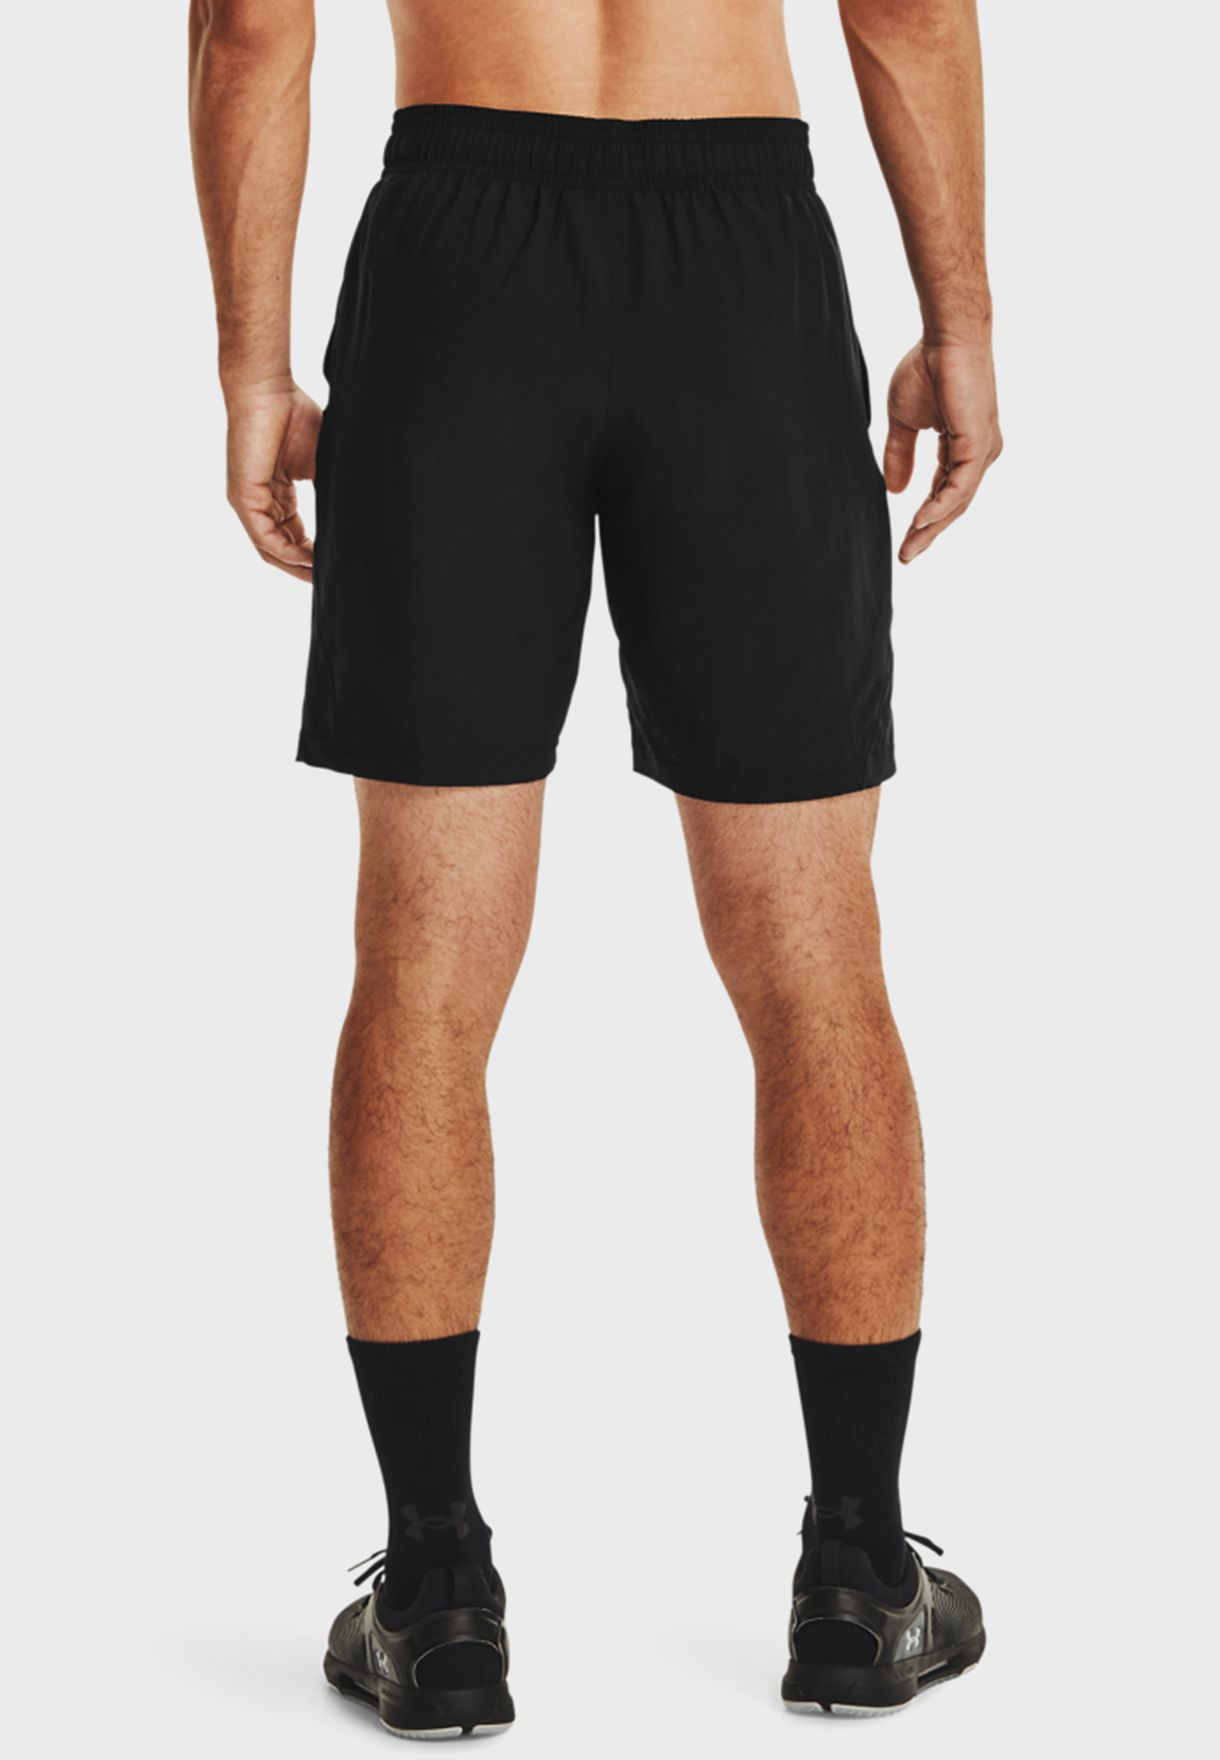 Woven Graphic Shorts